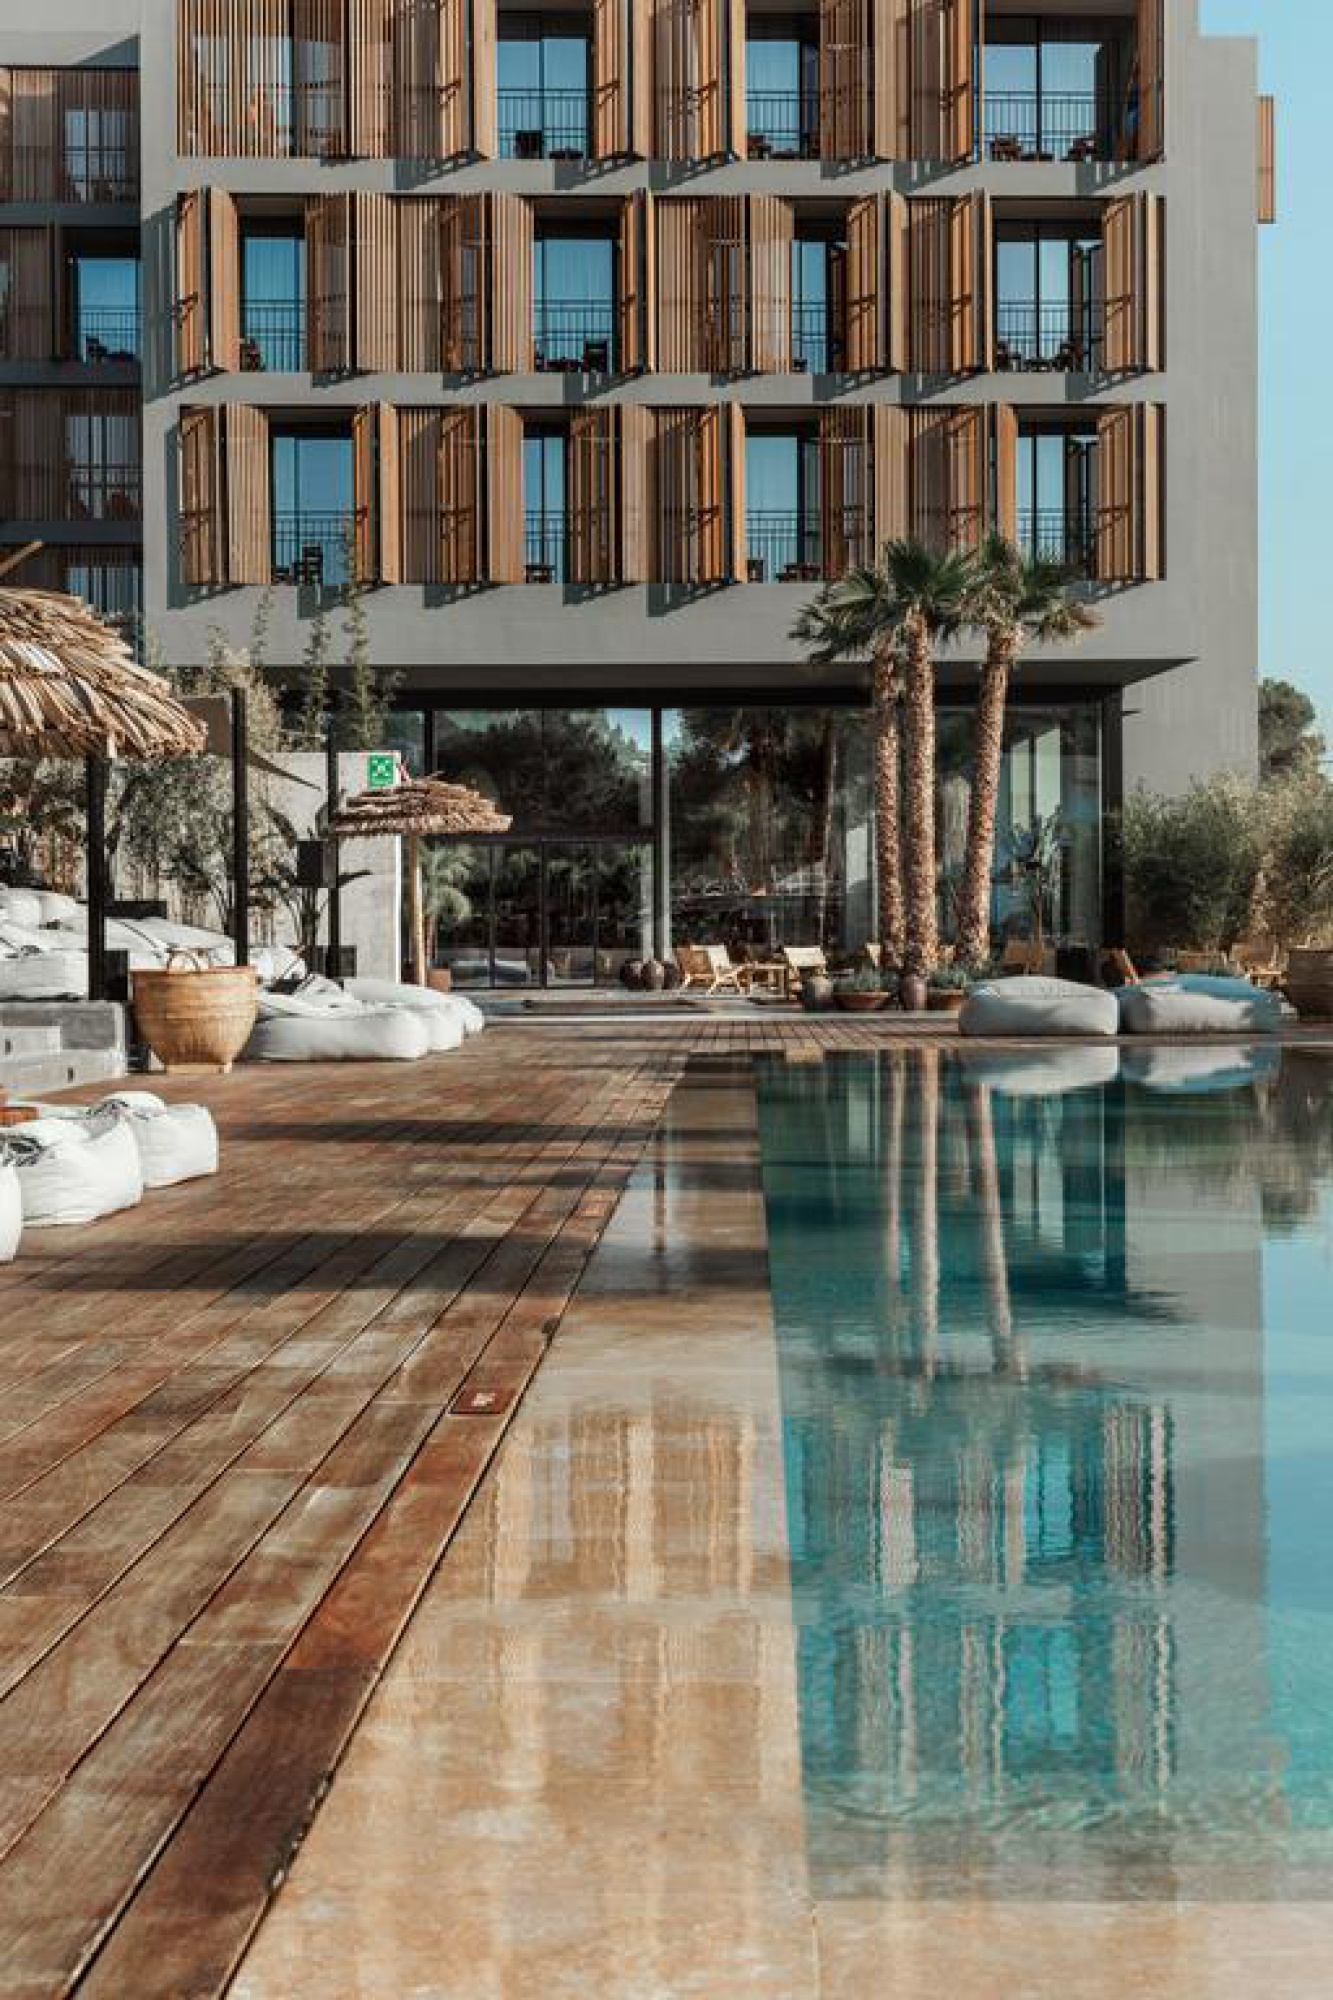 The Balearic beauty of Ibiza, the home for D'Simone's upcoming retreat